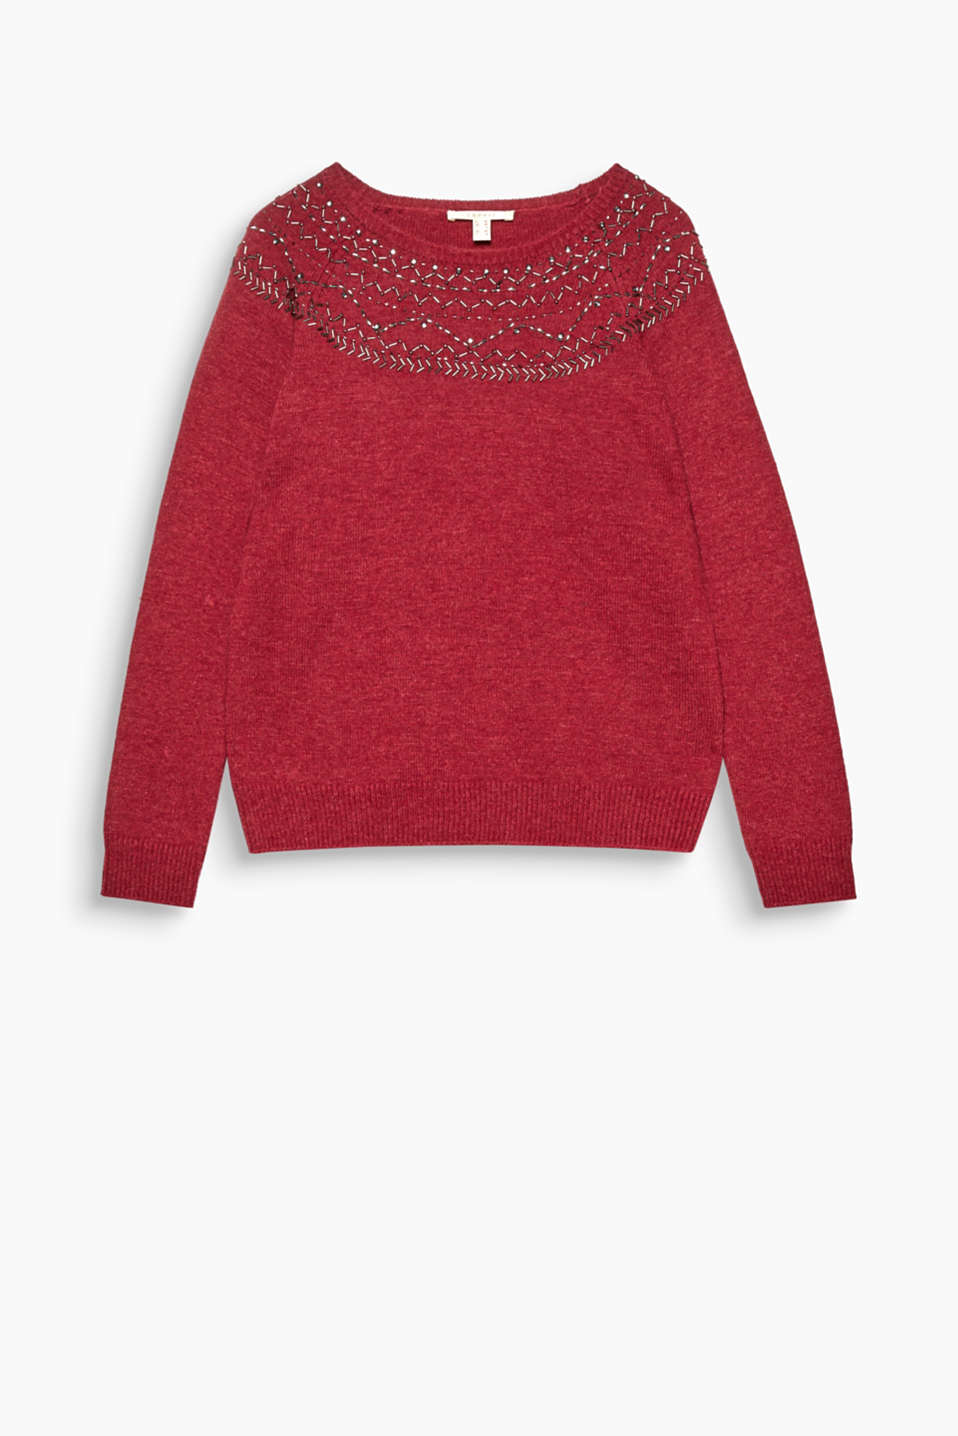 The delicate, decorative beading across the shoulders make this fine, knitted jumper a highlight for casual outfits.